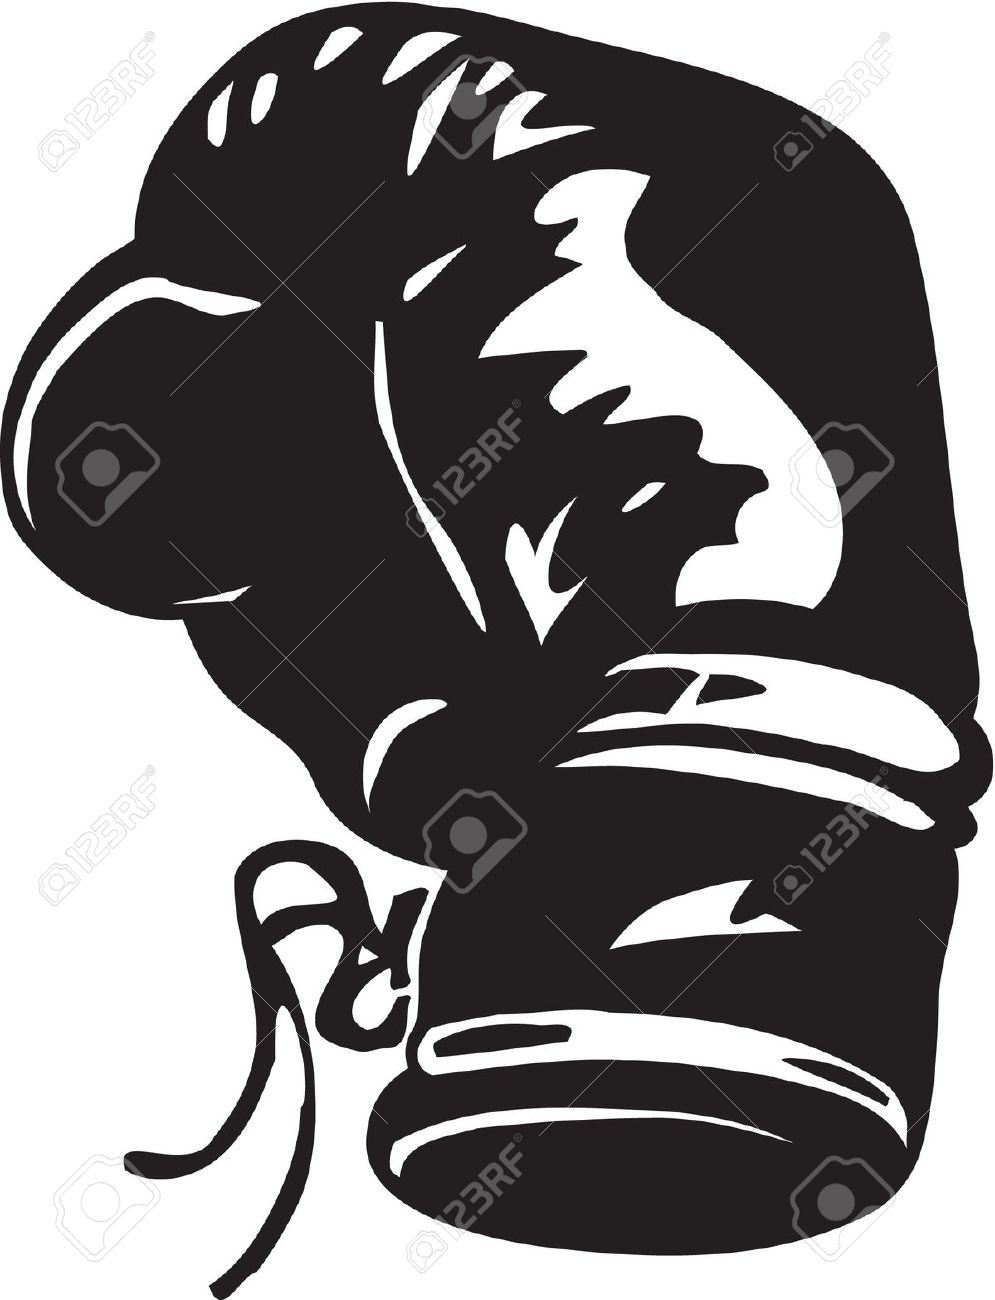 995x1300 Boxing Gloves Clipart Illustrations